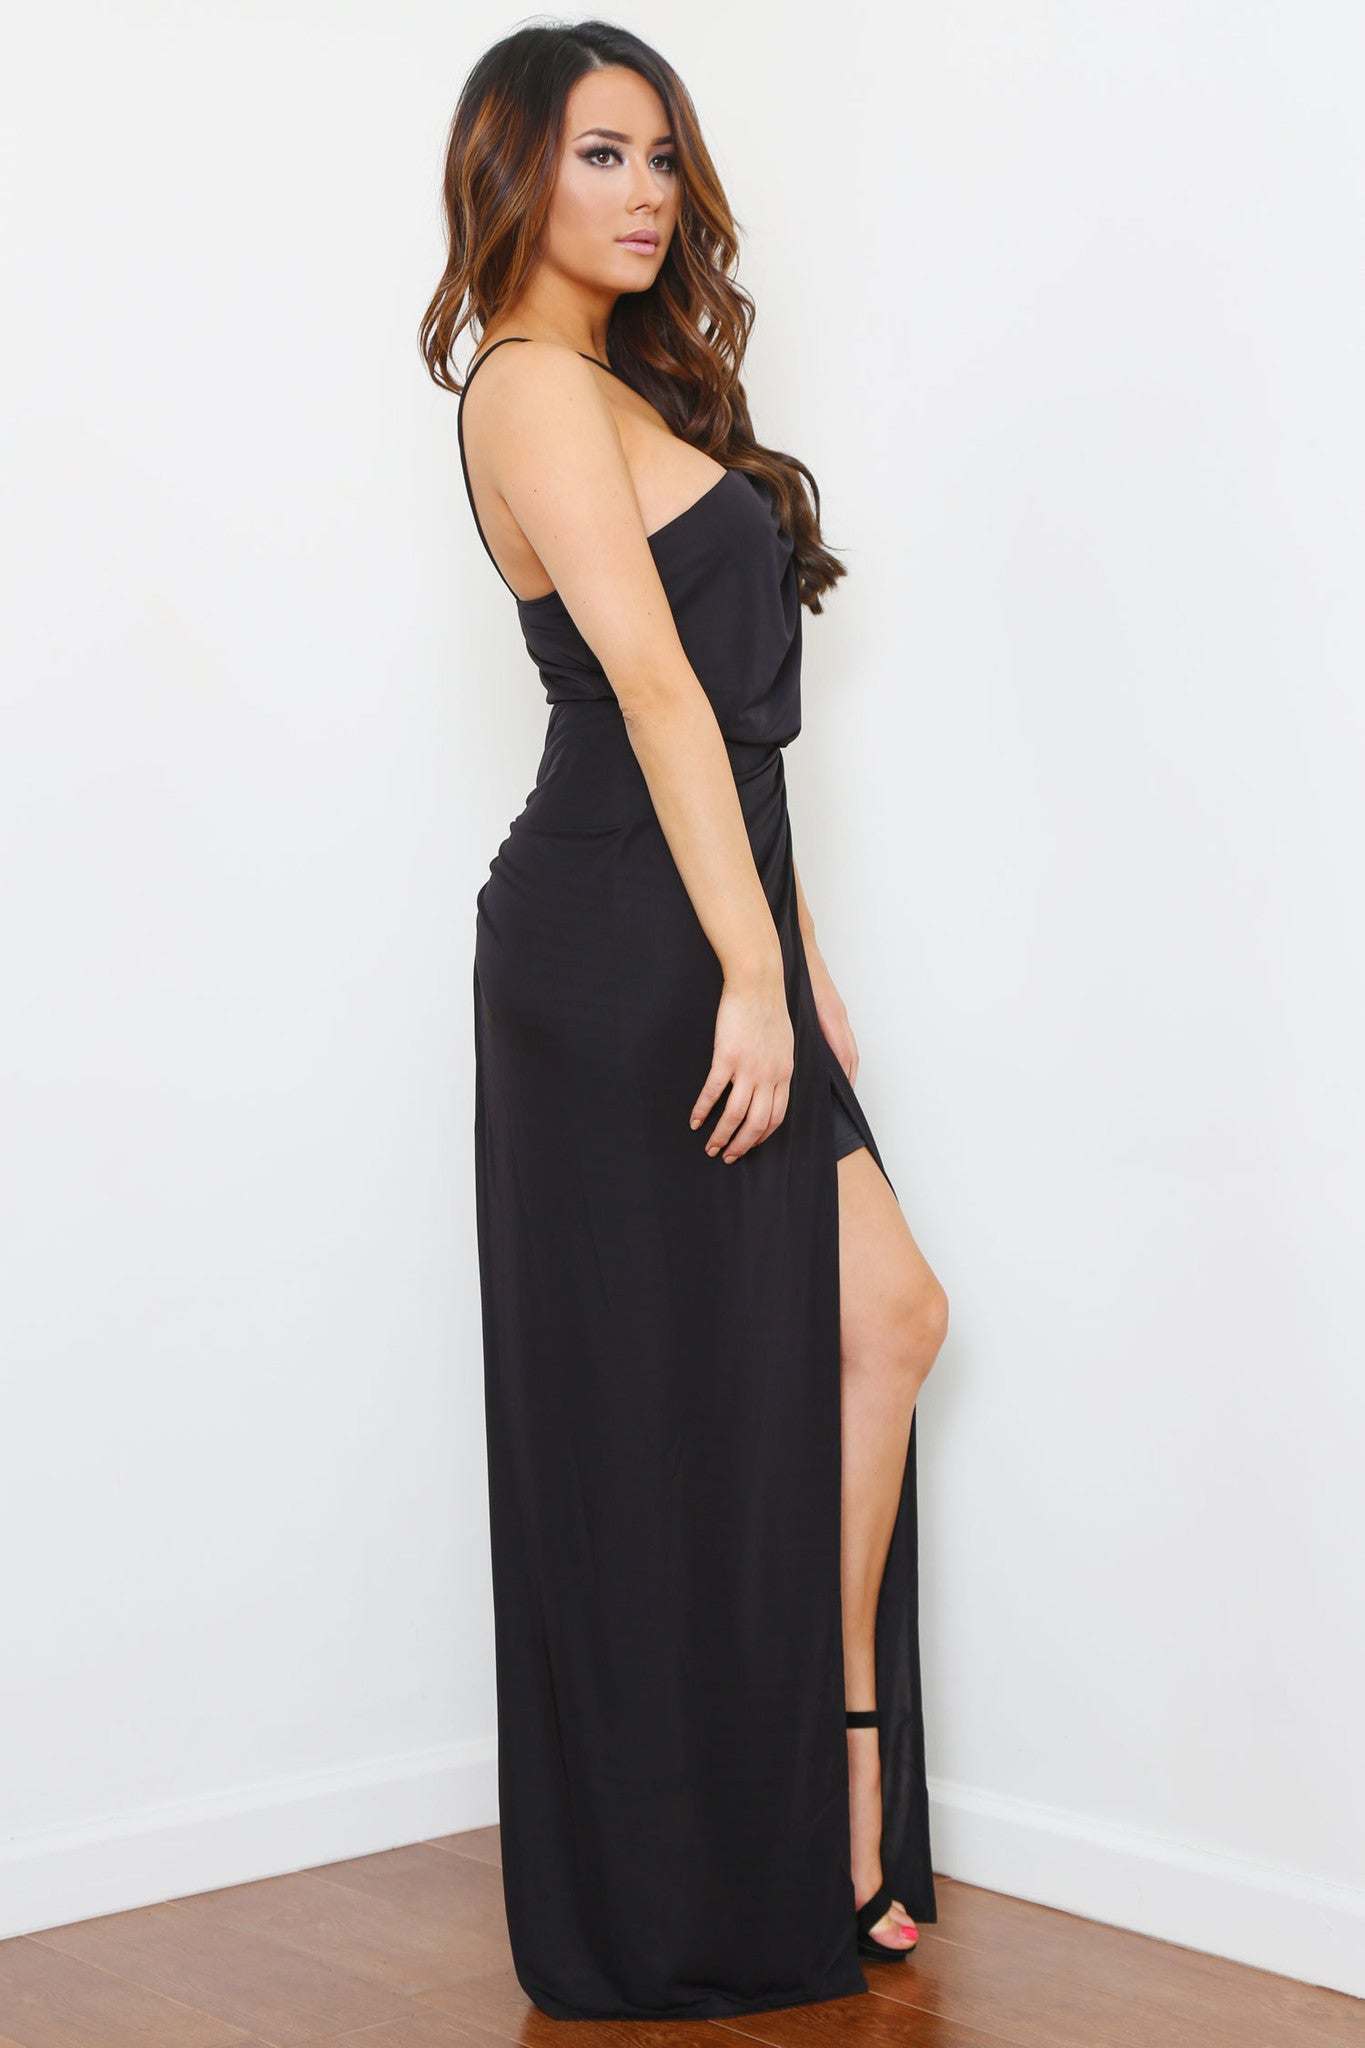 JULIETTE DRESS - Glam Envy - 2